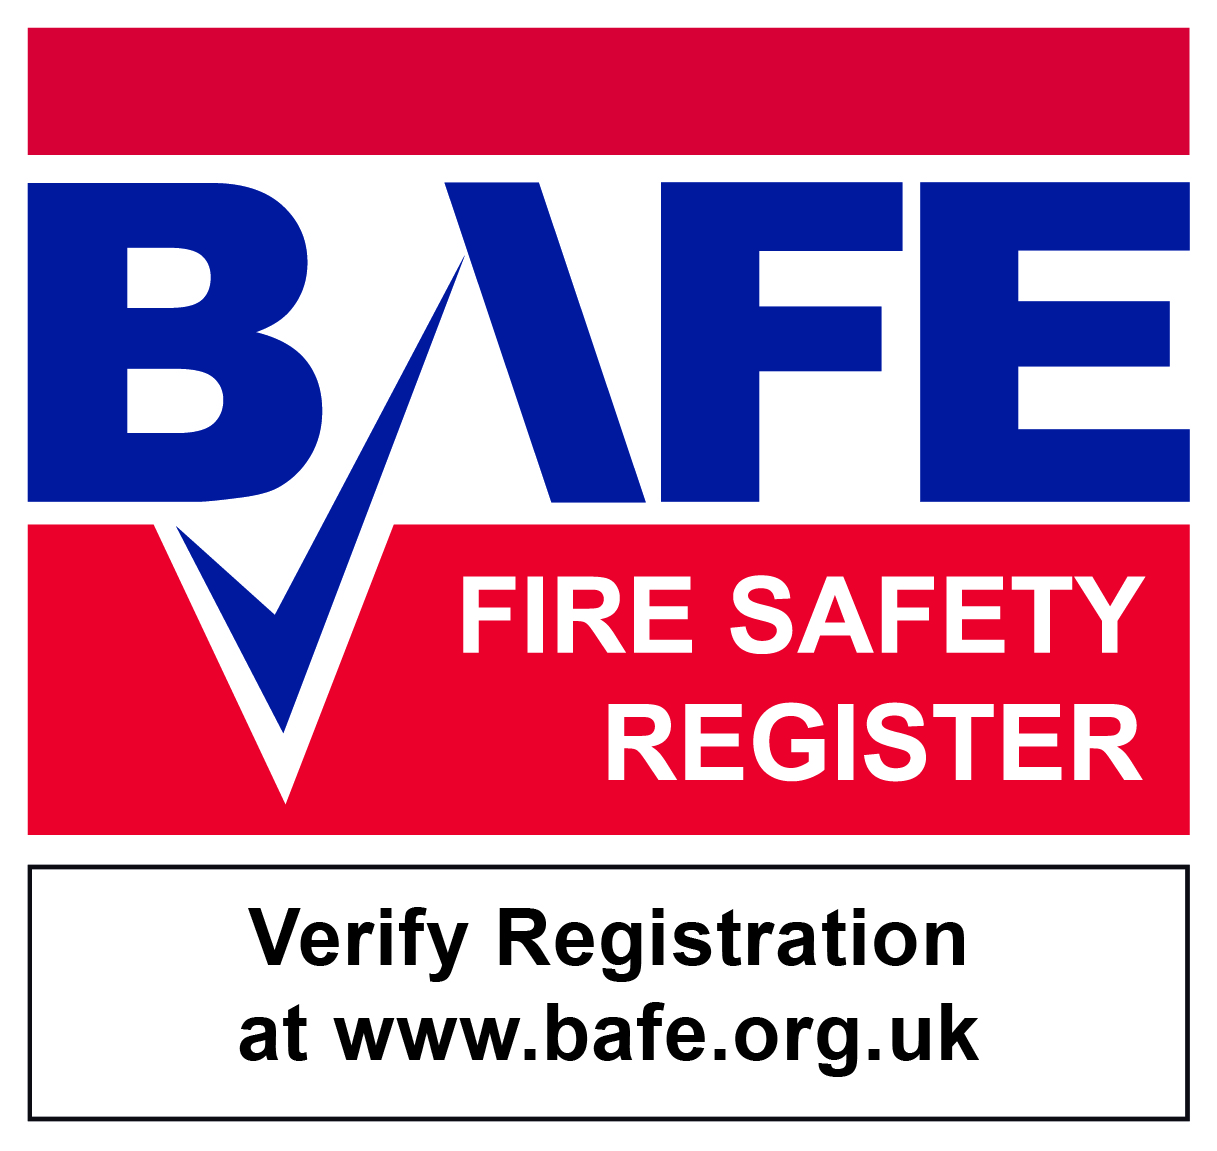 BAFE-Vehicle-Use-Only-Logo-JPG-CMYK